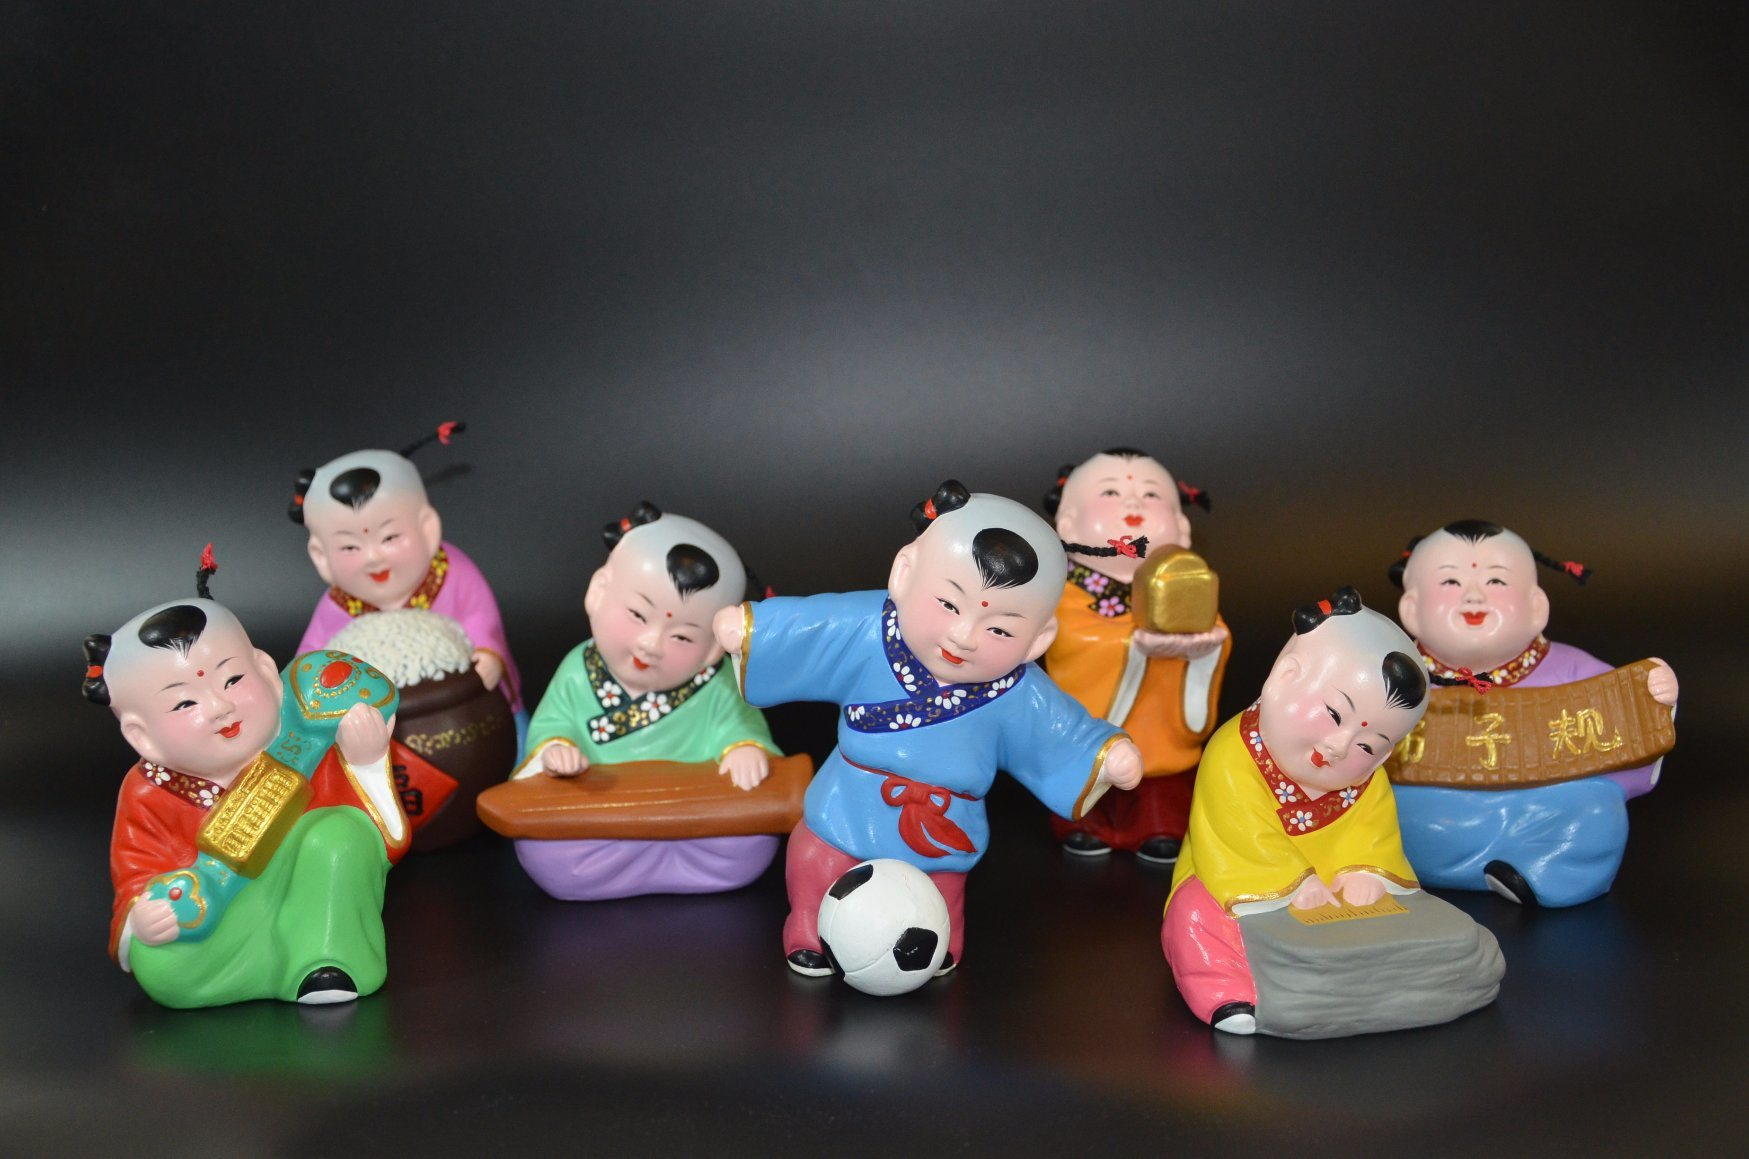 Lively Collection of Trational Chinese Baby